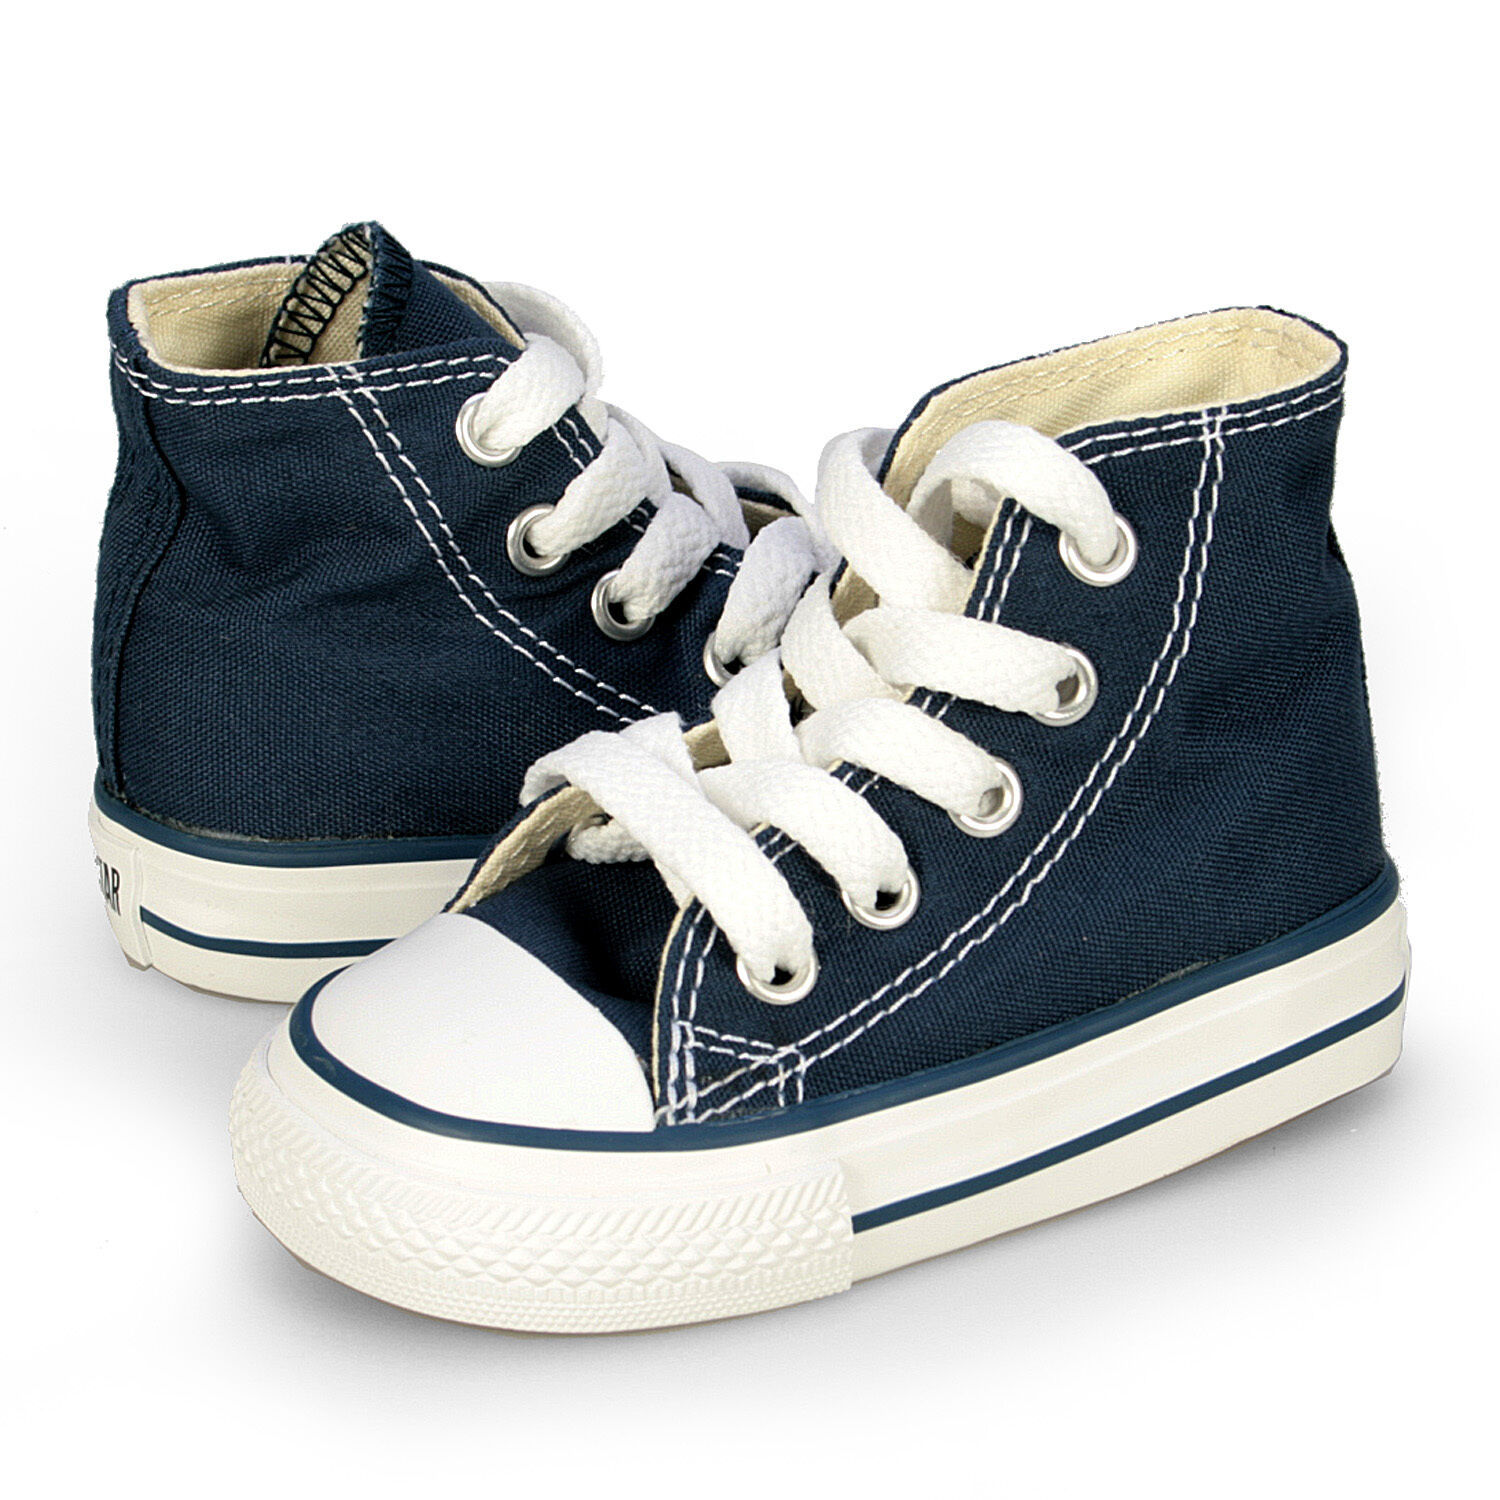 Converse All Star Chuck HI 7J233 Canvas Navy Kids Baby Toddler Shoes